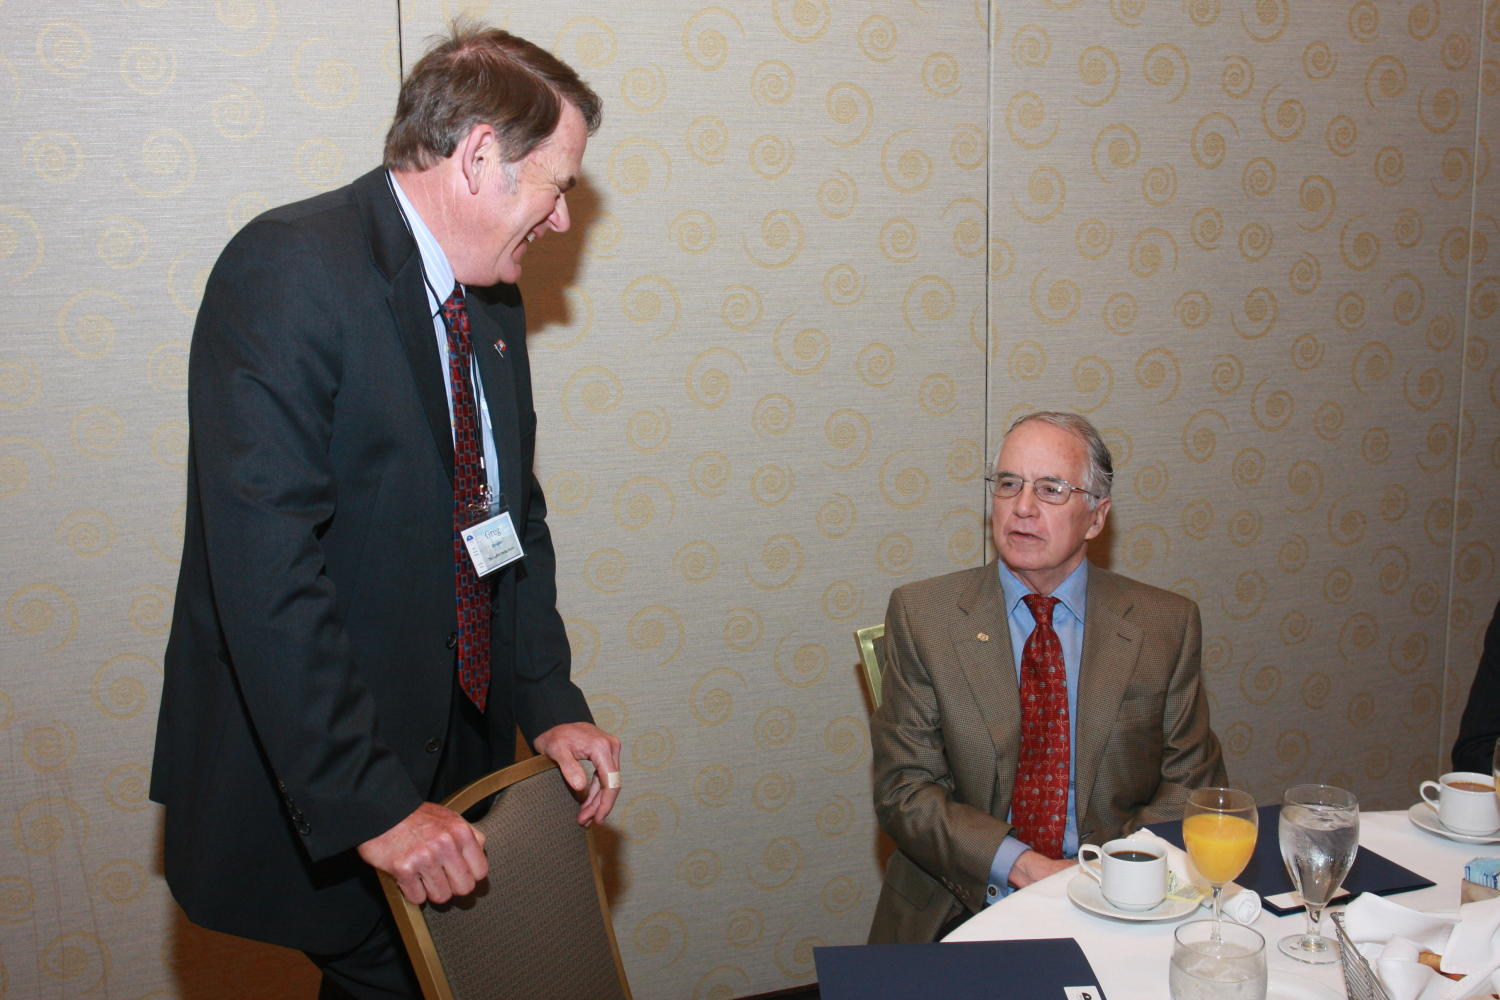 [Greg Shrader talking with other guest at TDNA conference], Photograph of Greg Shrader (left) talking with an unidentified guest seated at a table at the 2010 Texas Daily Newspaper Association annual meeting held in Houston, Texas.,